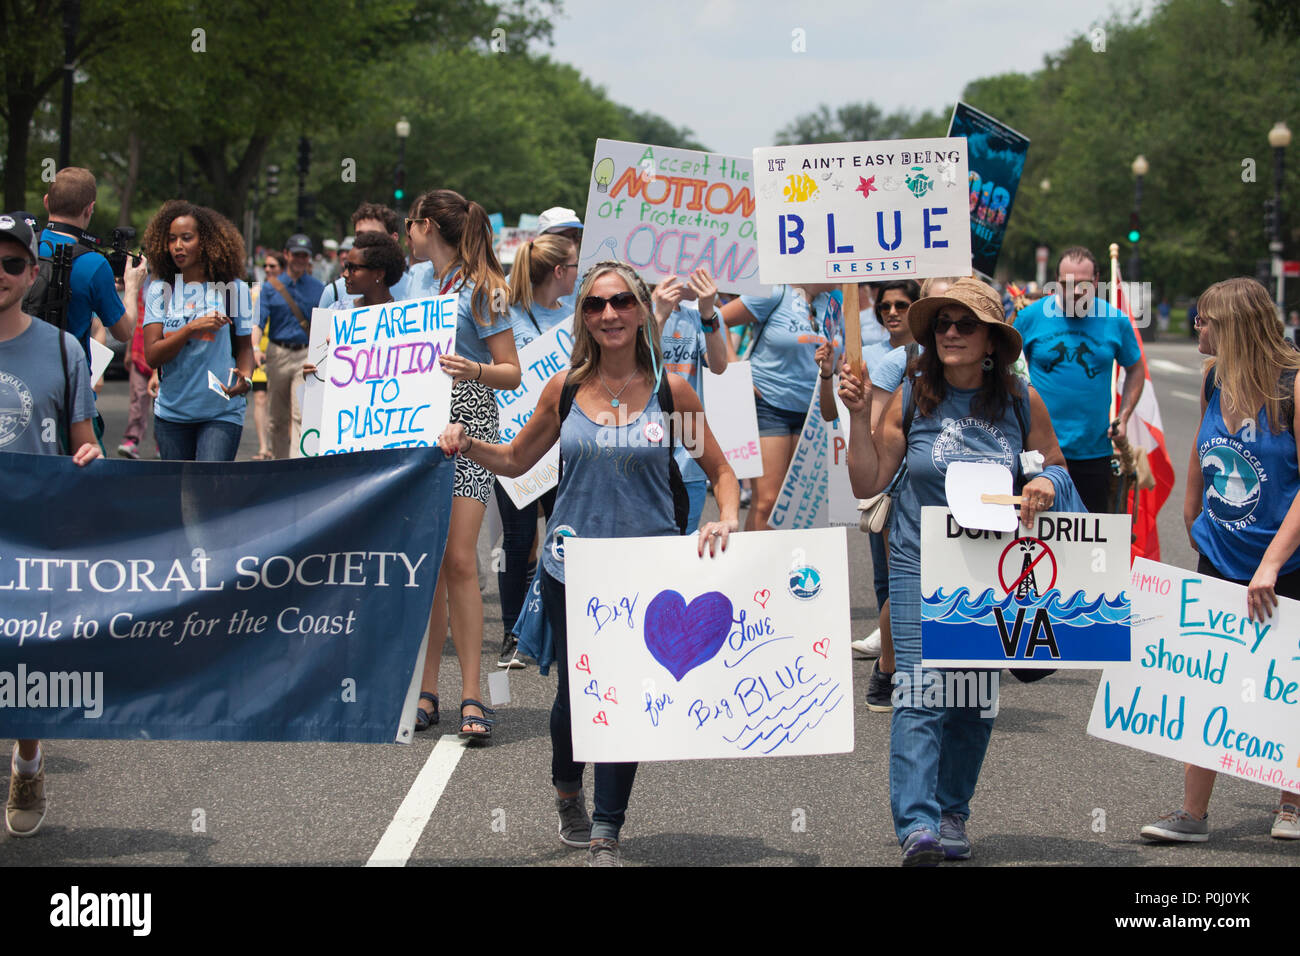 Washington DC, USA. 9th June 2018. Protestors carry signs up 16th Street NW during the March For The Ocean in Washington, D.C., June 9, 2018. The inaugural March for the Ocean called attention to ocean issues including plastic pollution and overfishing at events in the U.S. Capital and around the United States. Credit: Robert Meyers/Alamy Live News - Stock Image